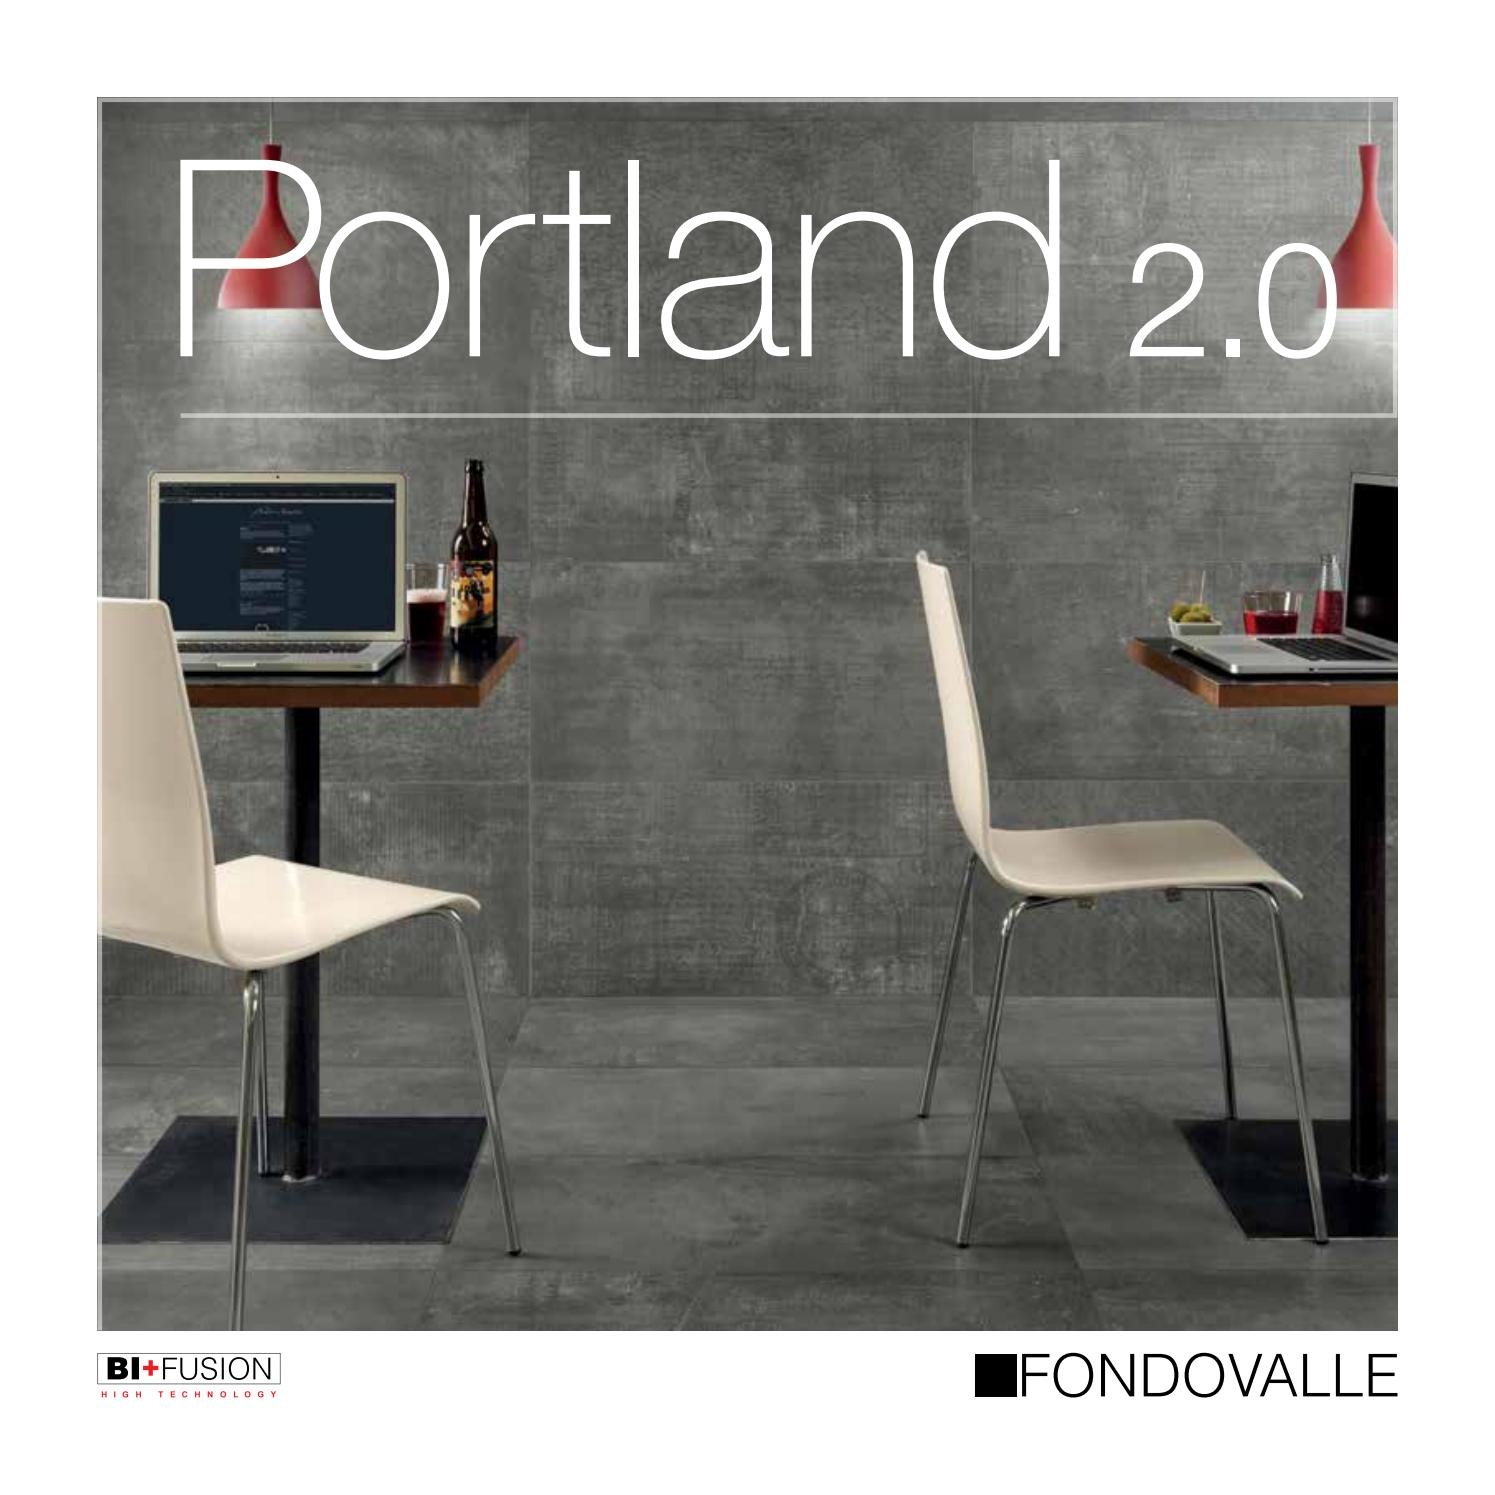 fondovalle portland 2 0 by dexterton issuu. Black Bedroom Furniture Sets. Home Design Ideas